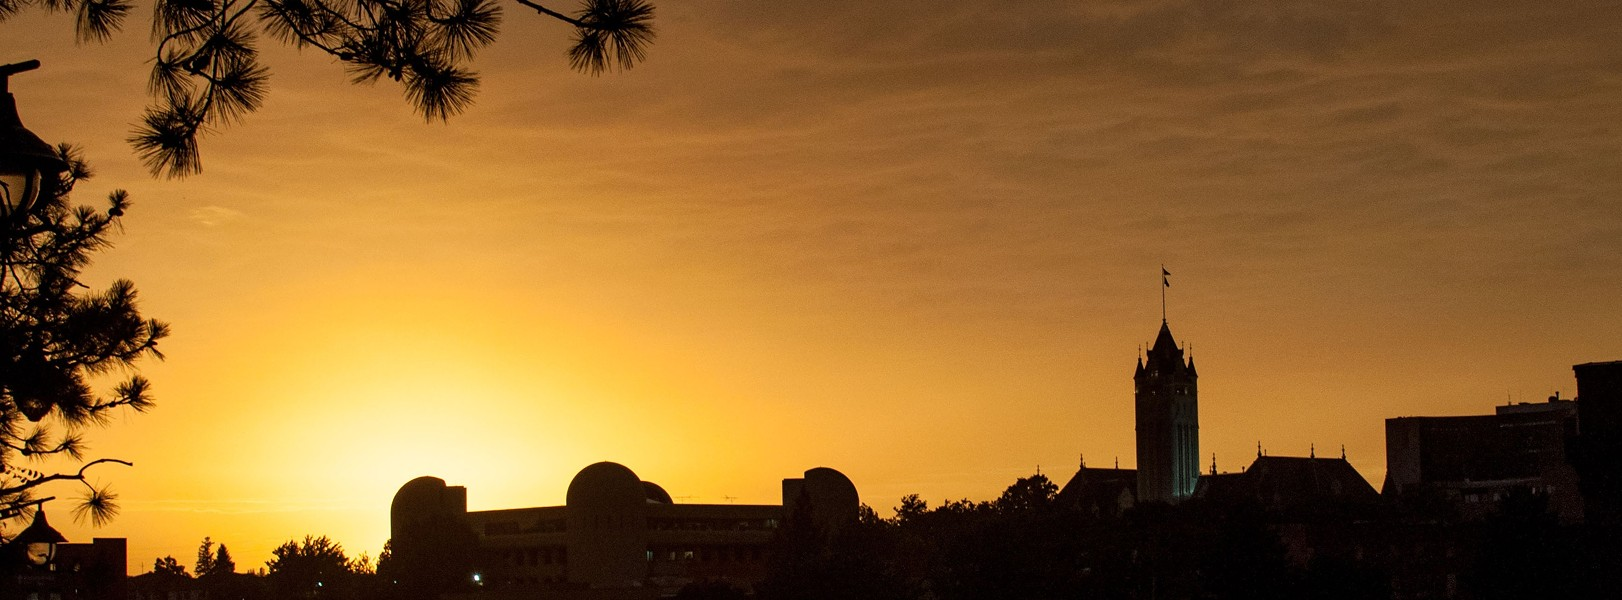 Would you rather have your winter sunsets at 4:30 pm or 5:30 pm? - DANIEL WALTERS PHOTO